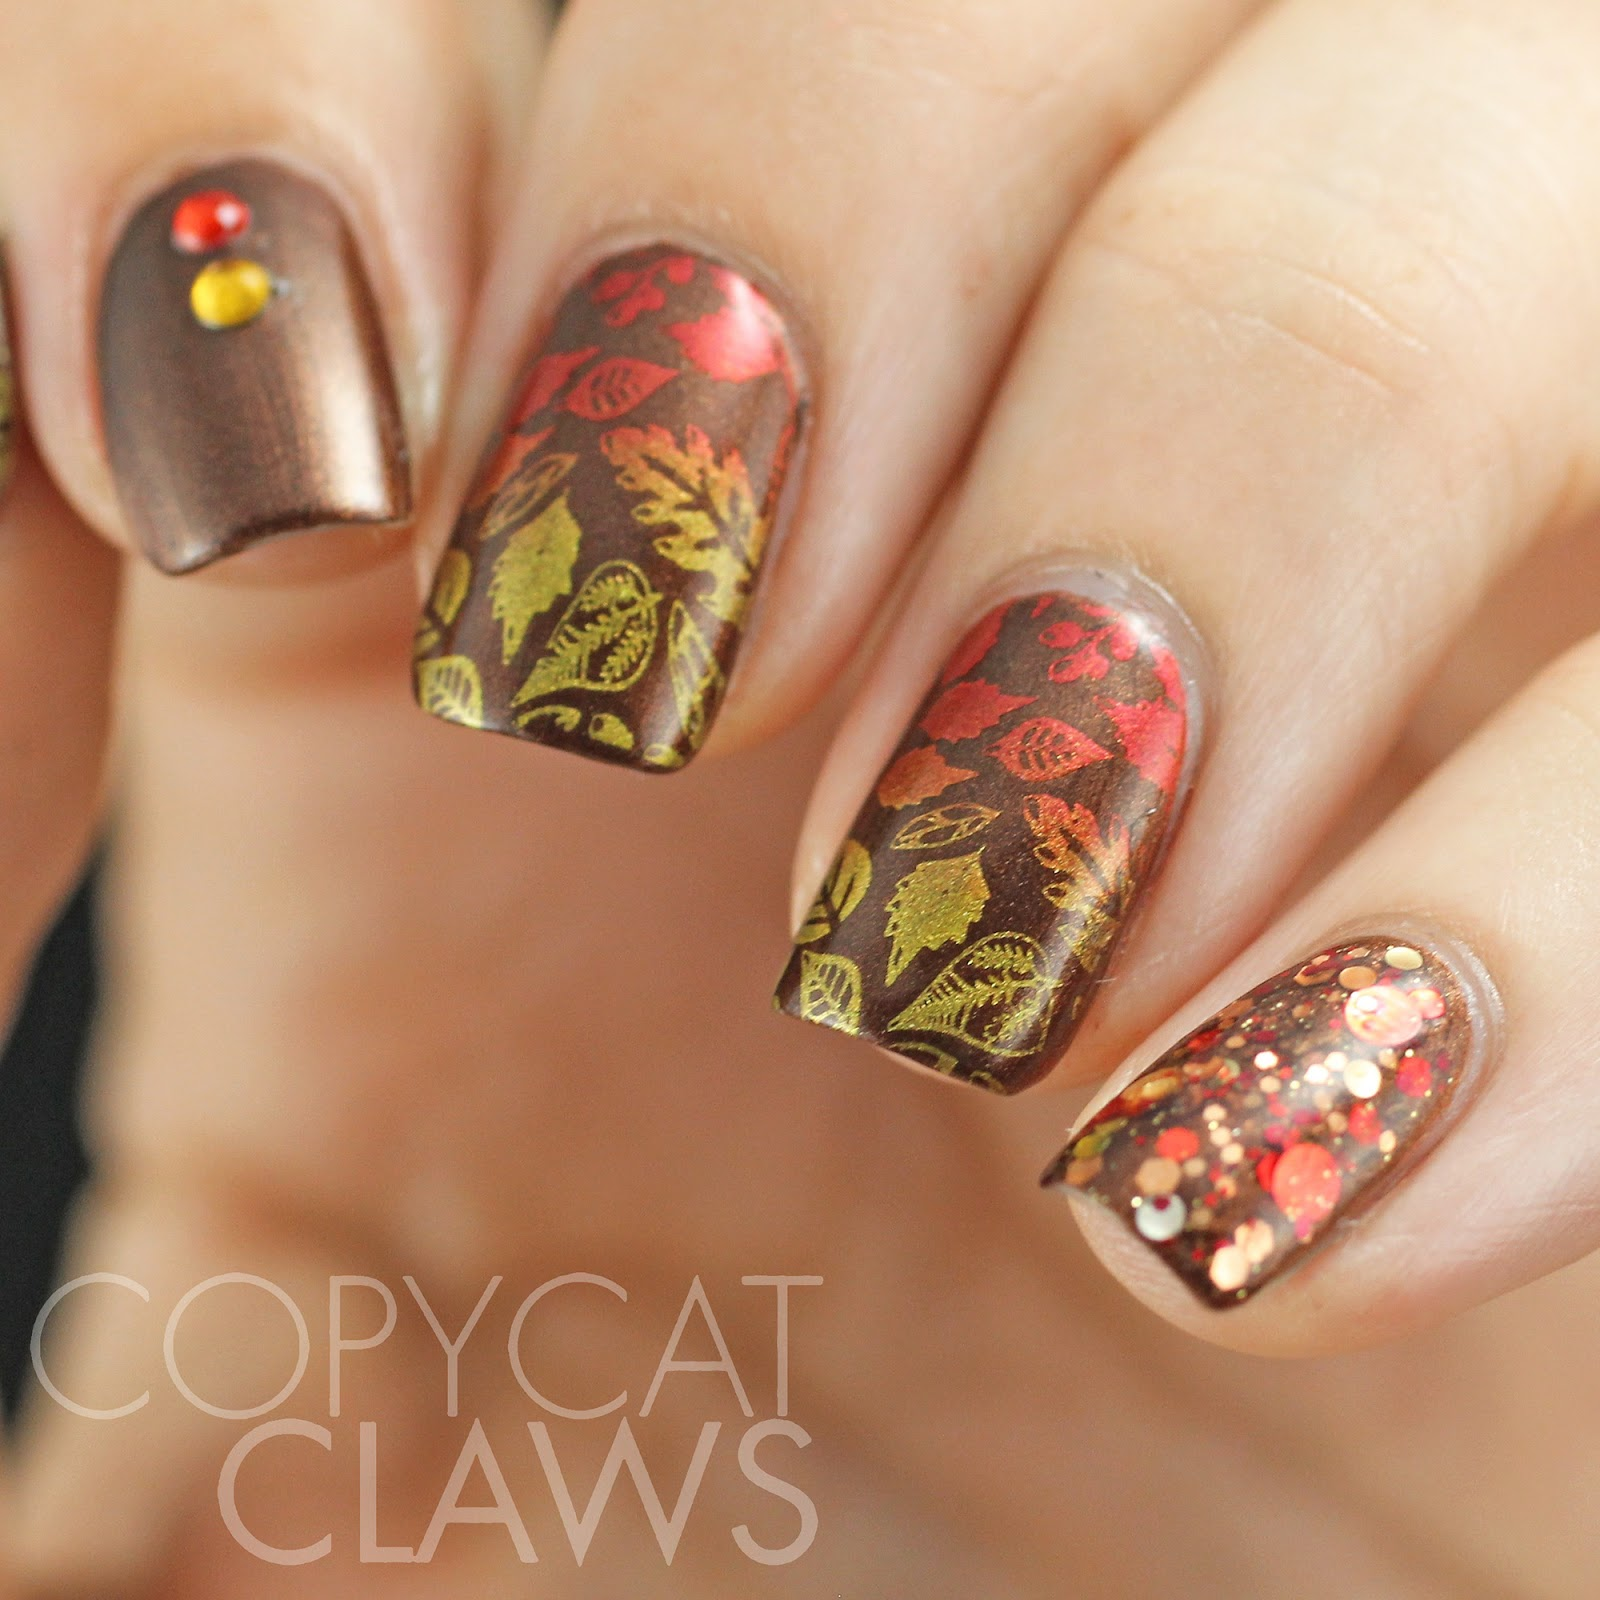 Toe Nail Designs 2015 Fall: Copycat Claws: Sunday Stamping